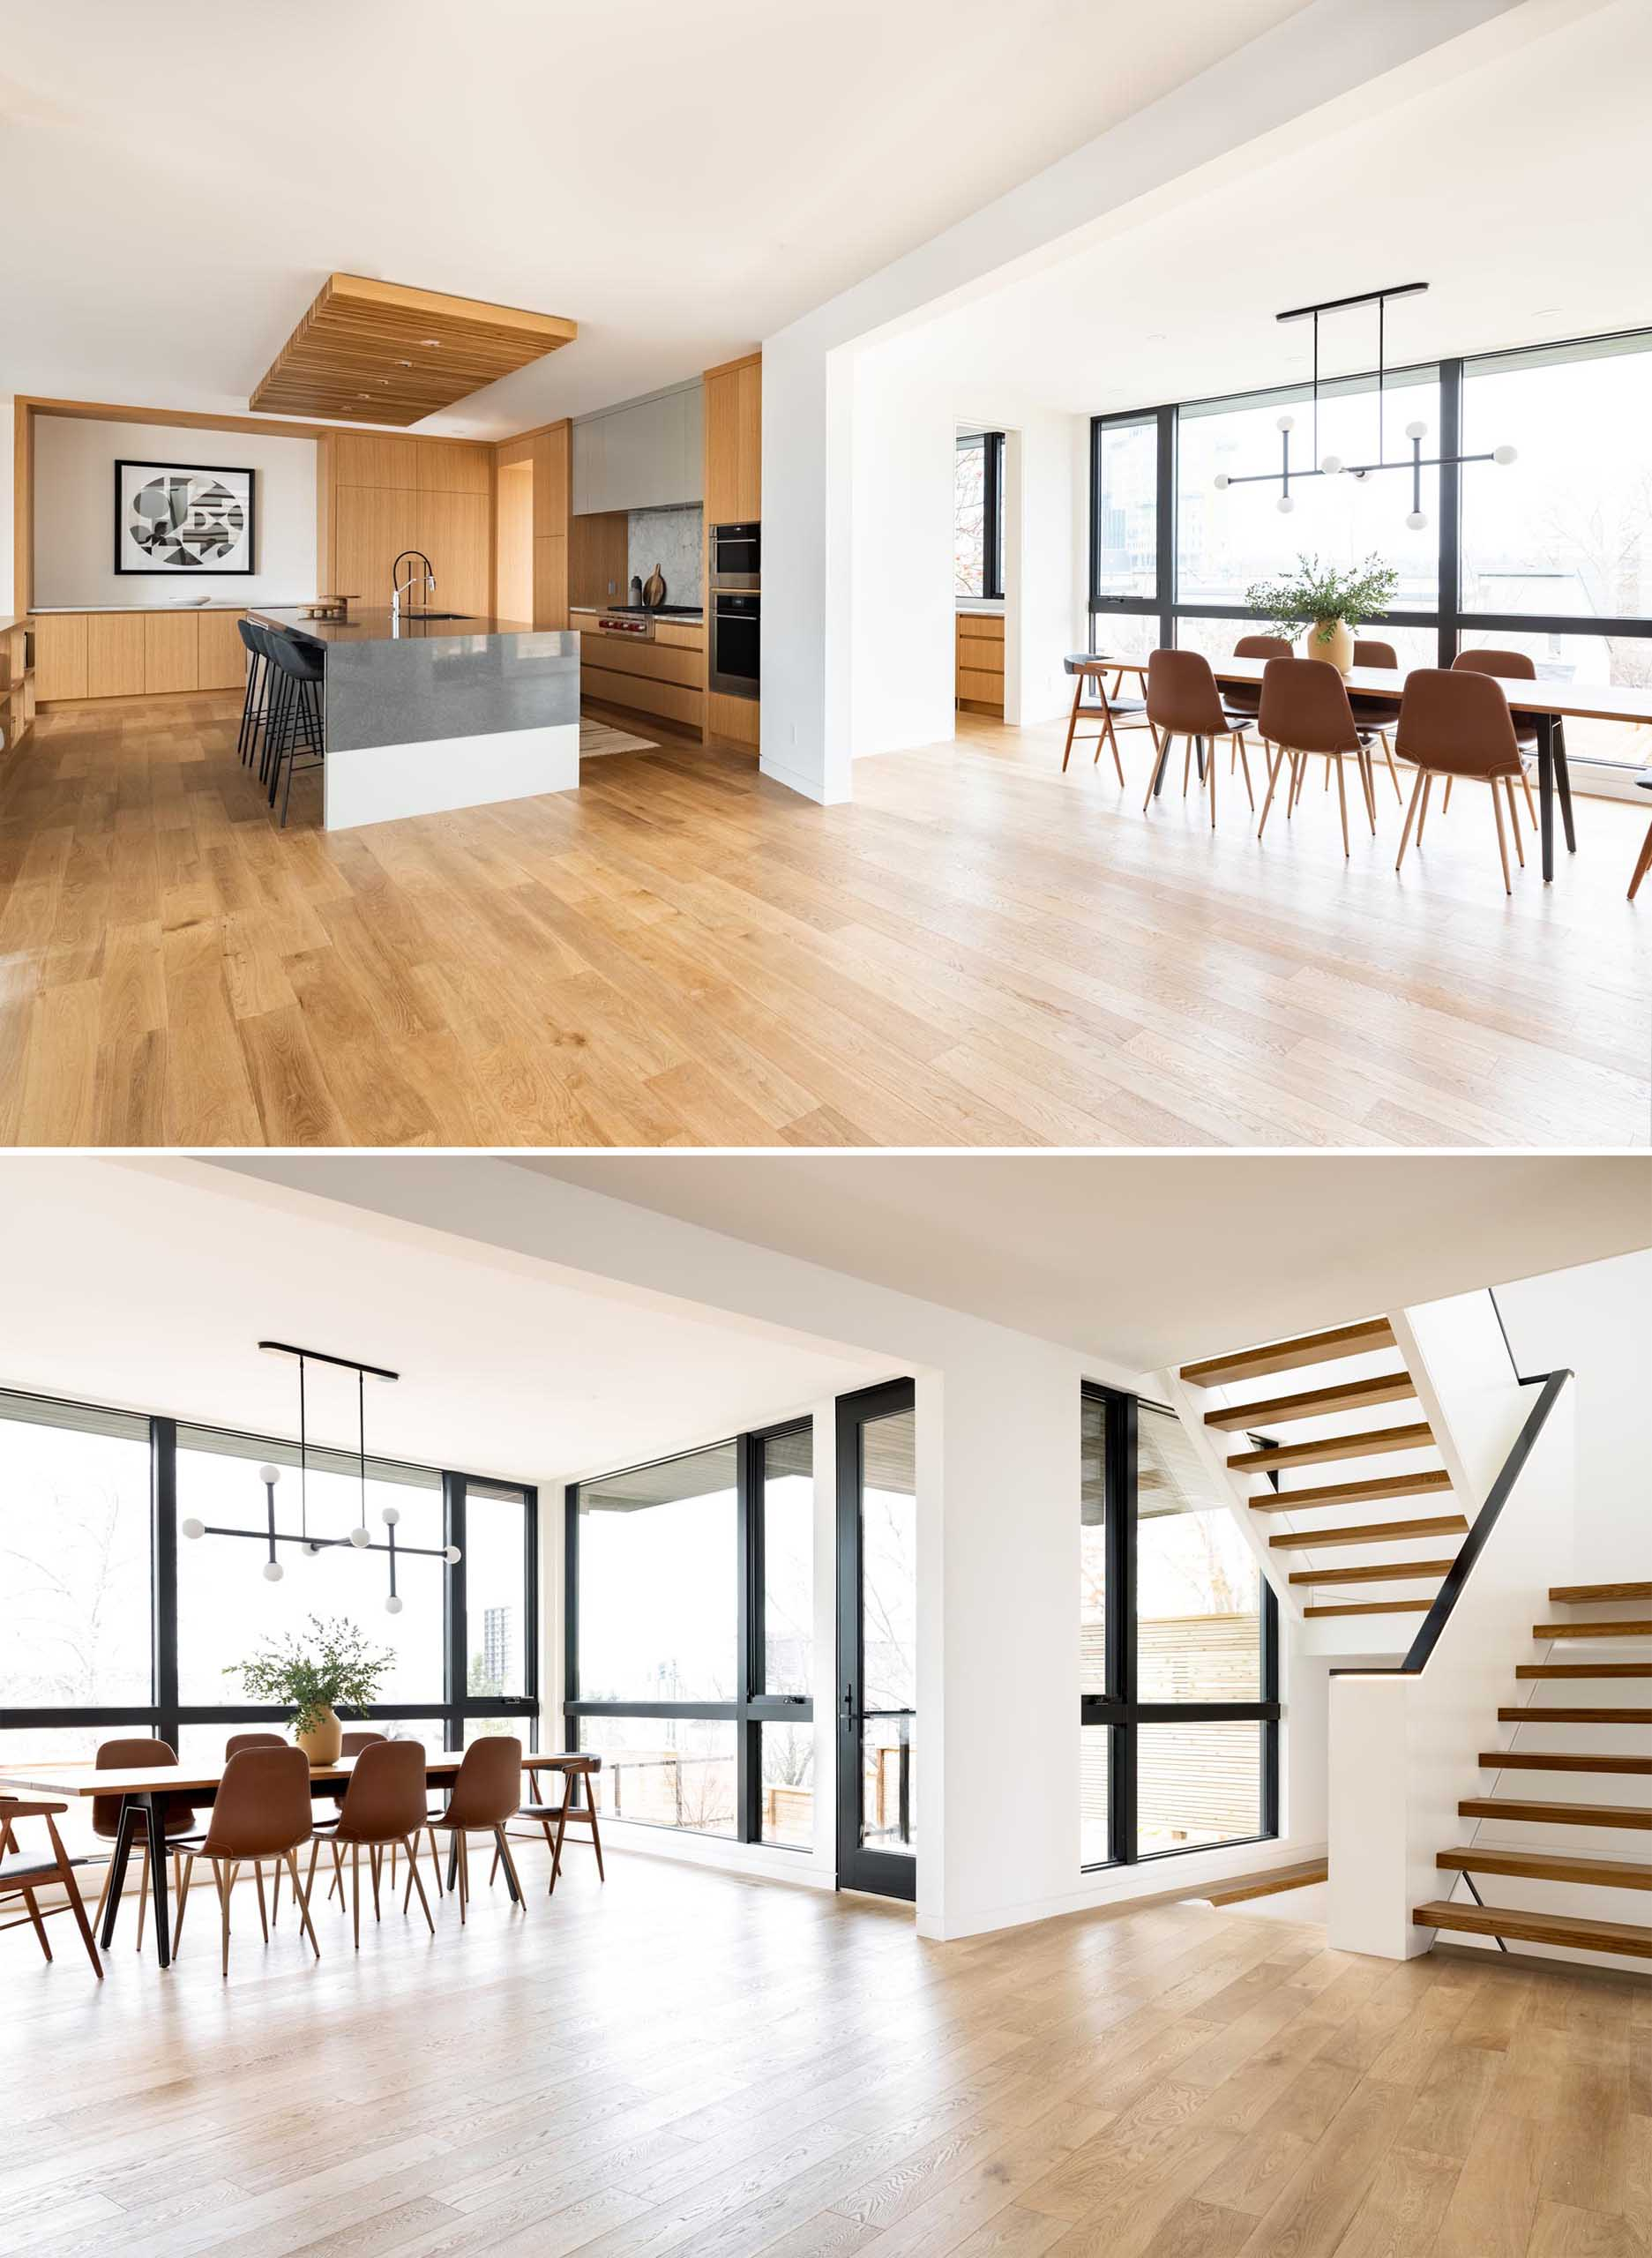 This open plan dining room is furnished with a long wood dining table with a sculptural horizontal light hanging above.